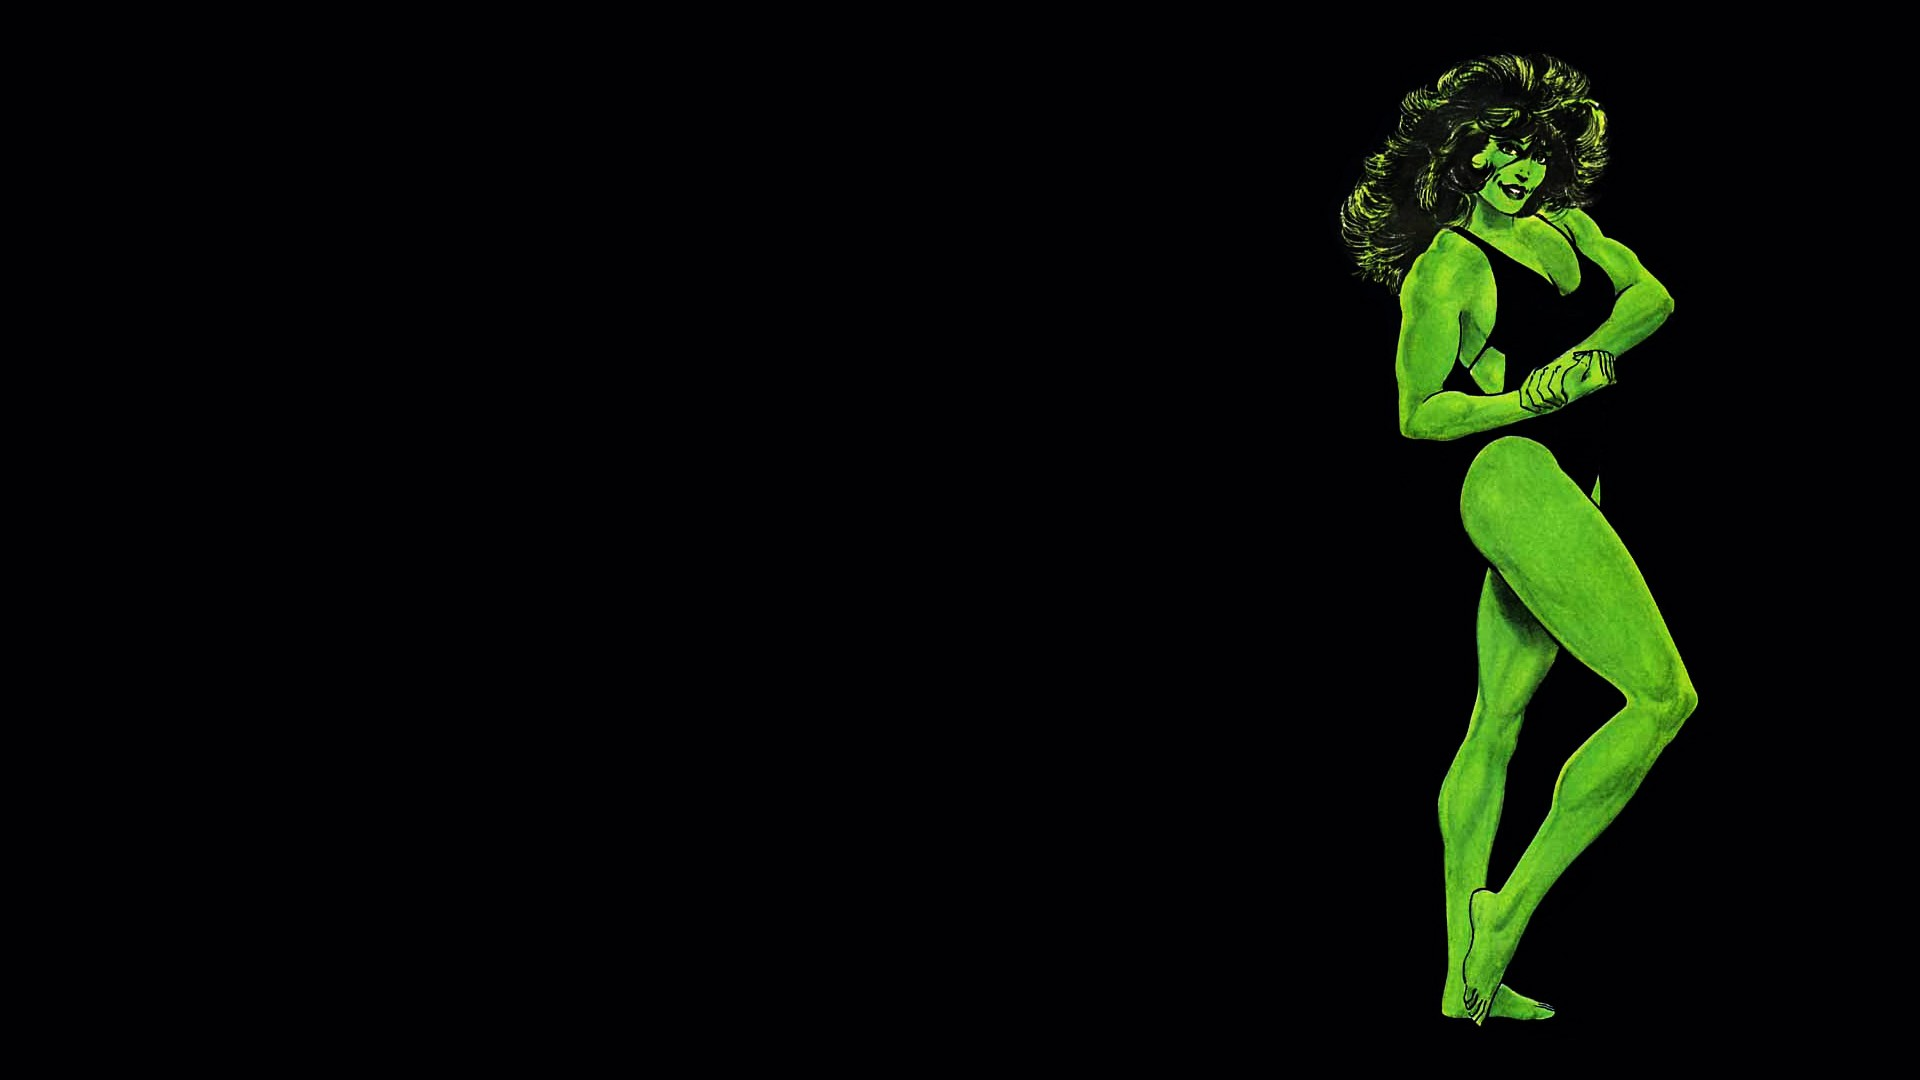 Iphone 8 Plus X Ray Wallpaper She Hulk Full Hd Wallpaper And Background Image